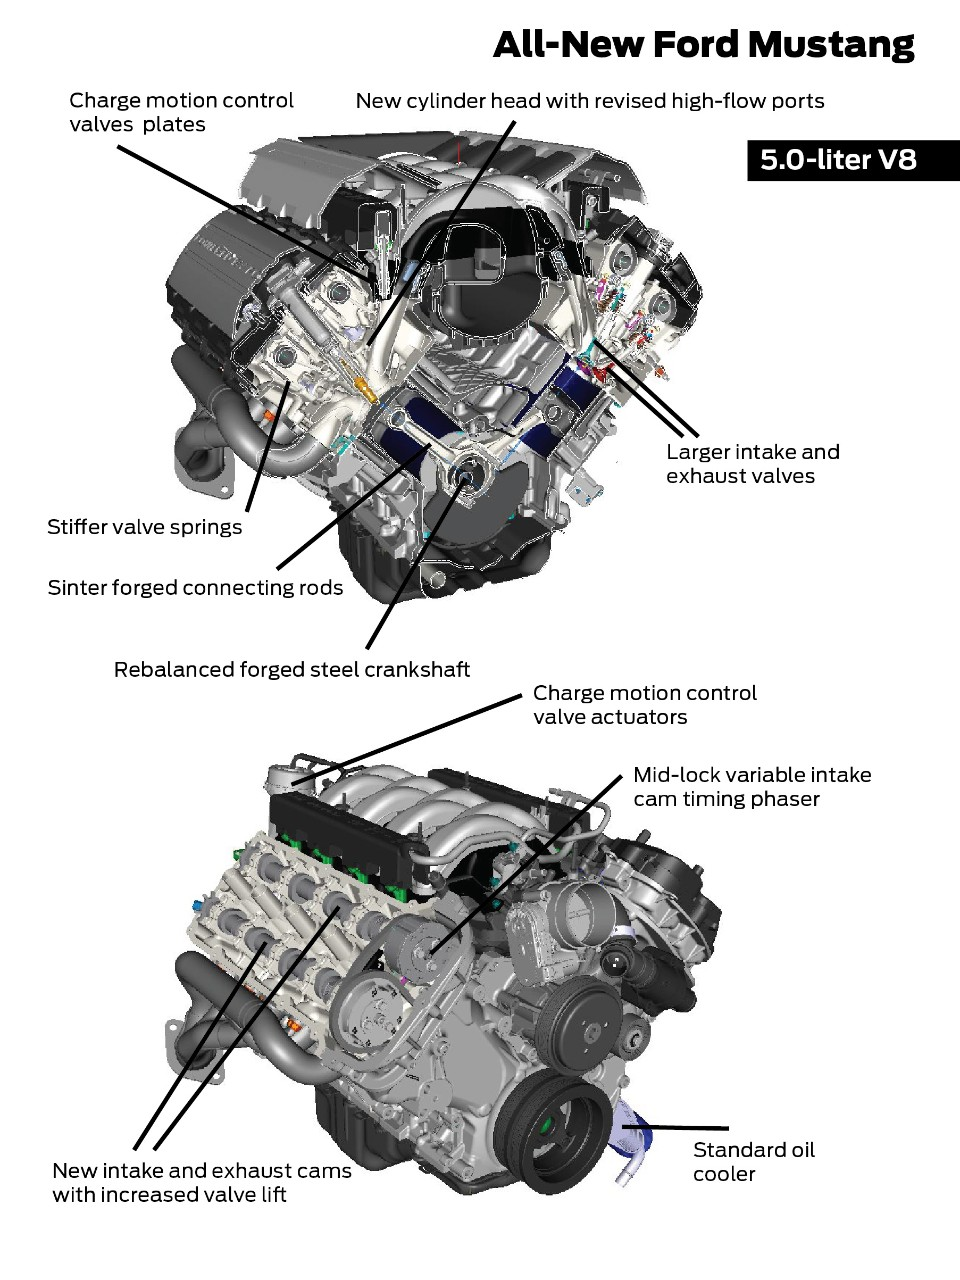 2015-17 ford coyote mustang specs 5 0l engine